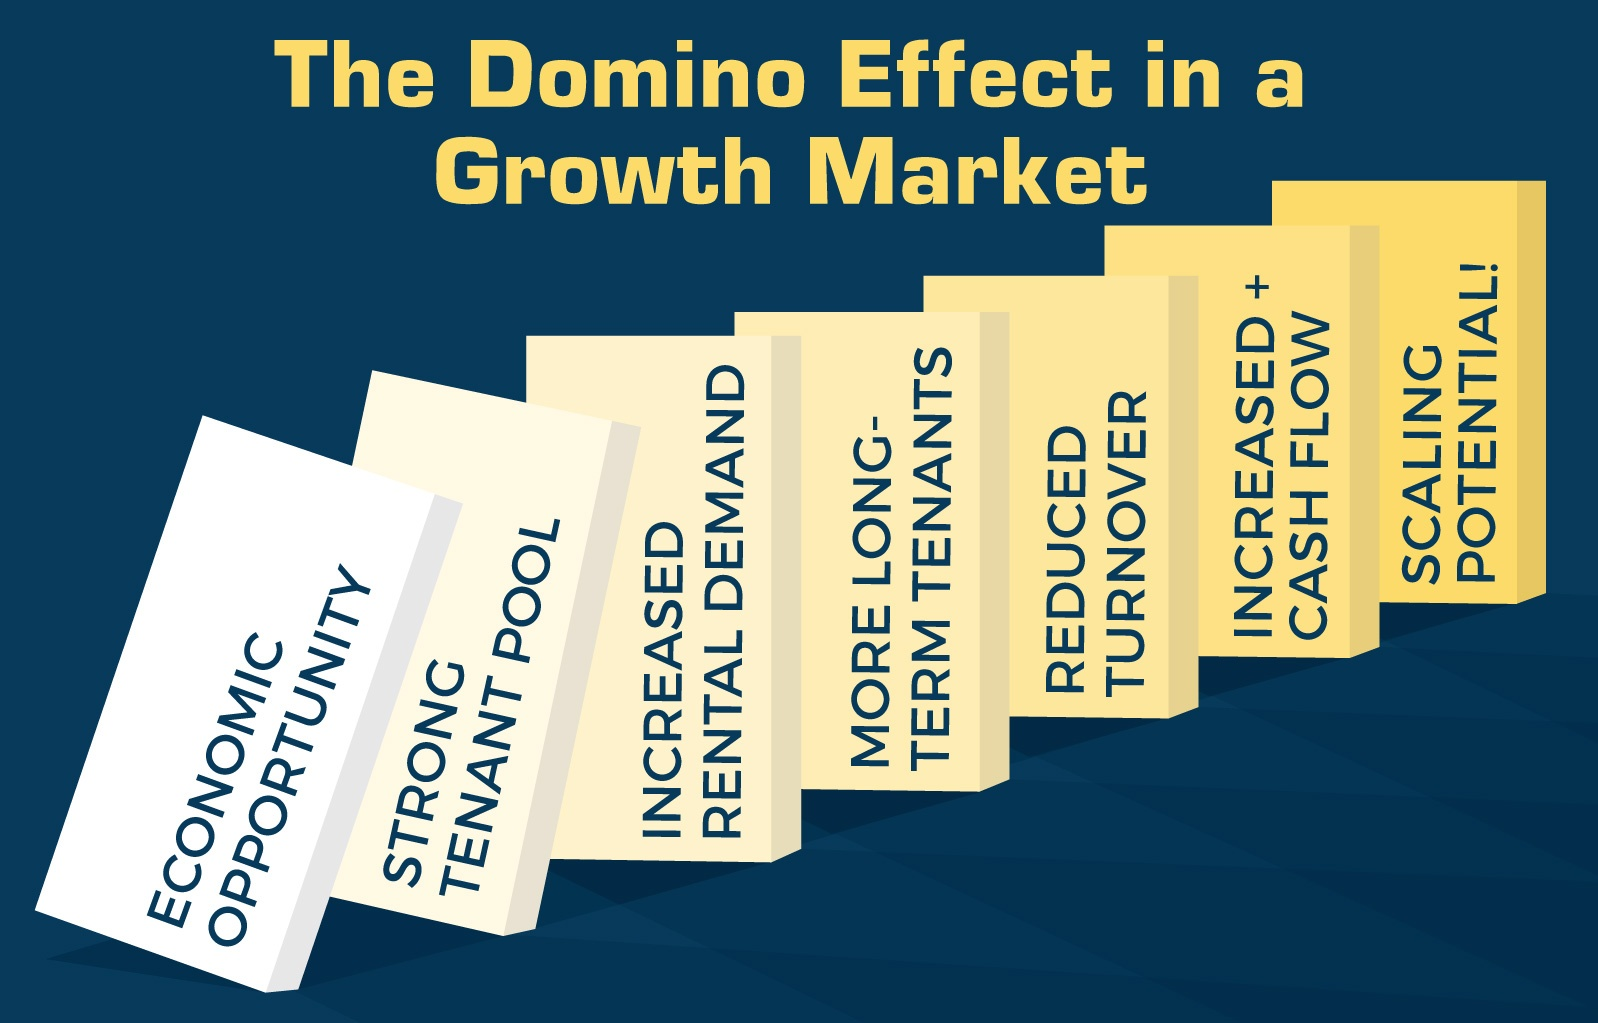 domino effect growing market